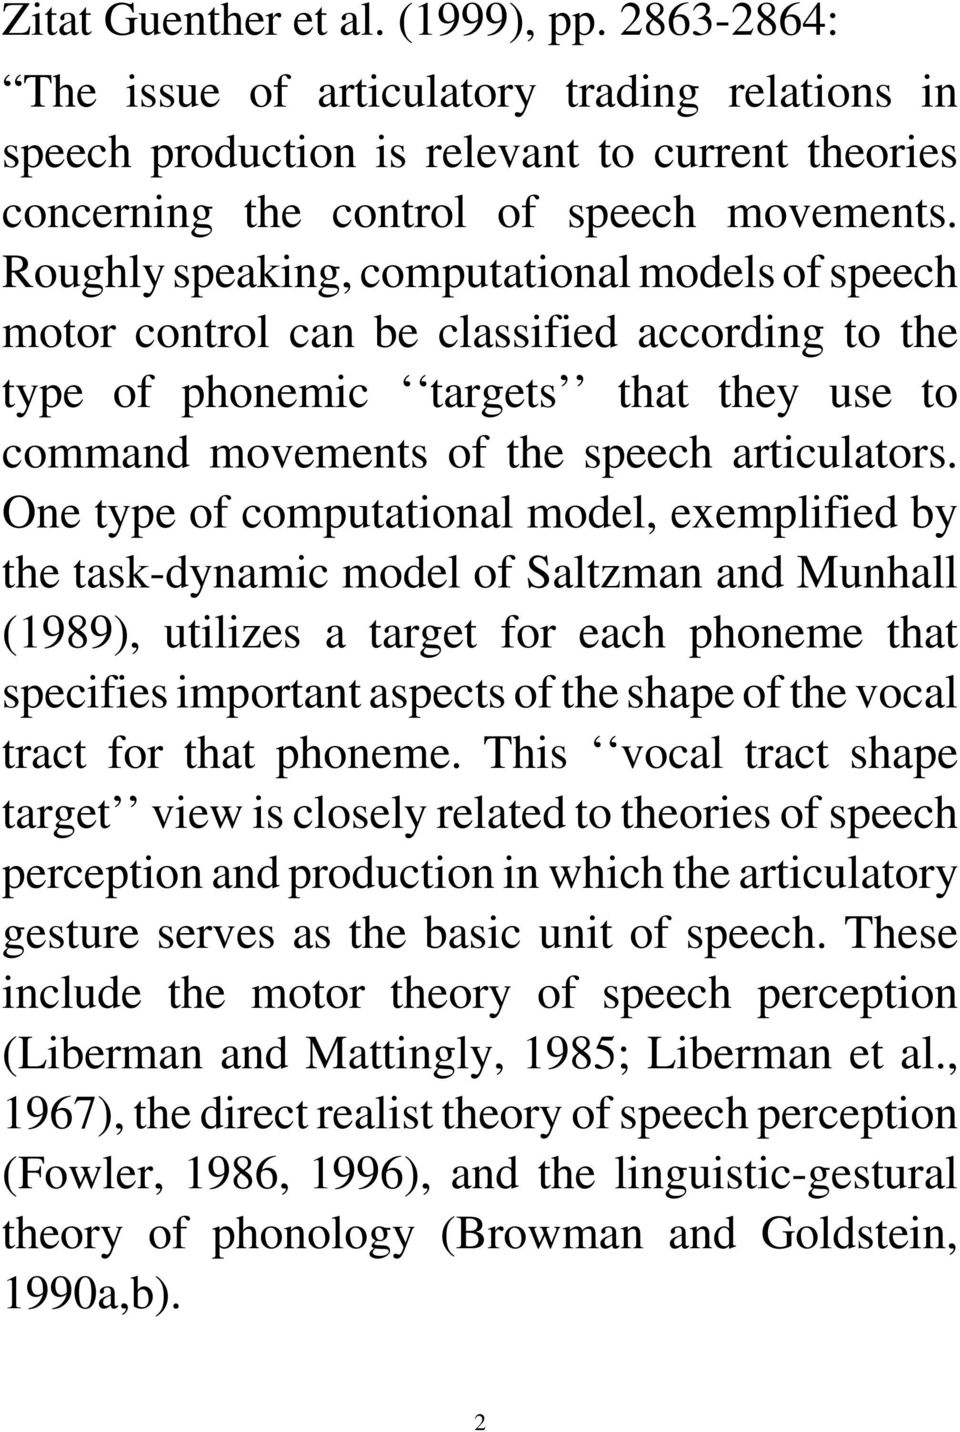 One type of computational model, exemplified by the task-dynamic model of Saltzman and Munhall (1989), utilizes a target for each phoneme that specifies important aspects of the shape of the vocal